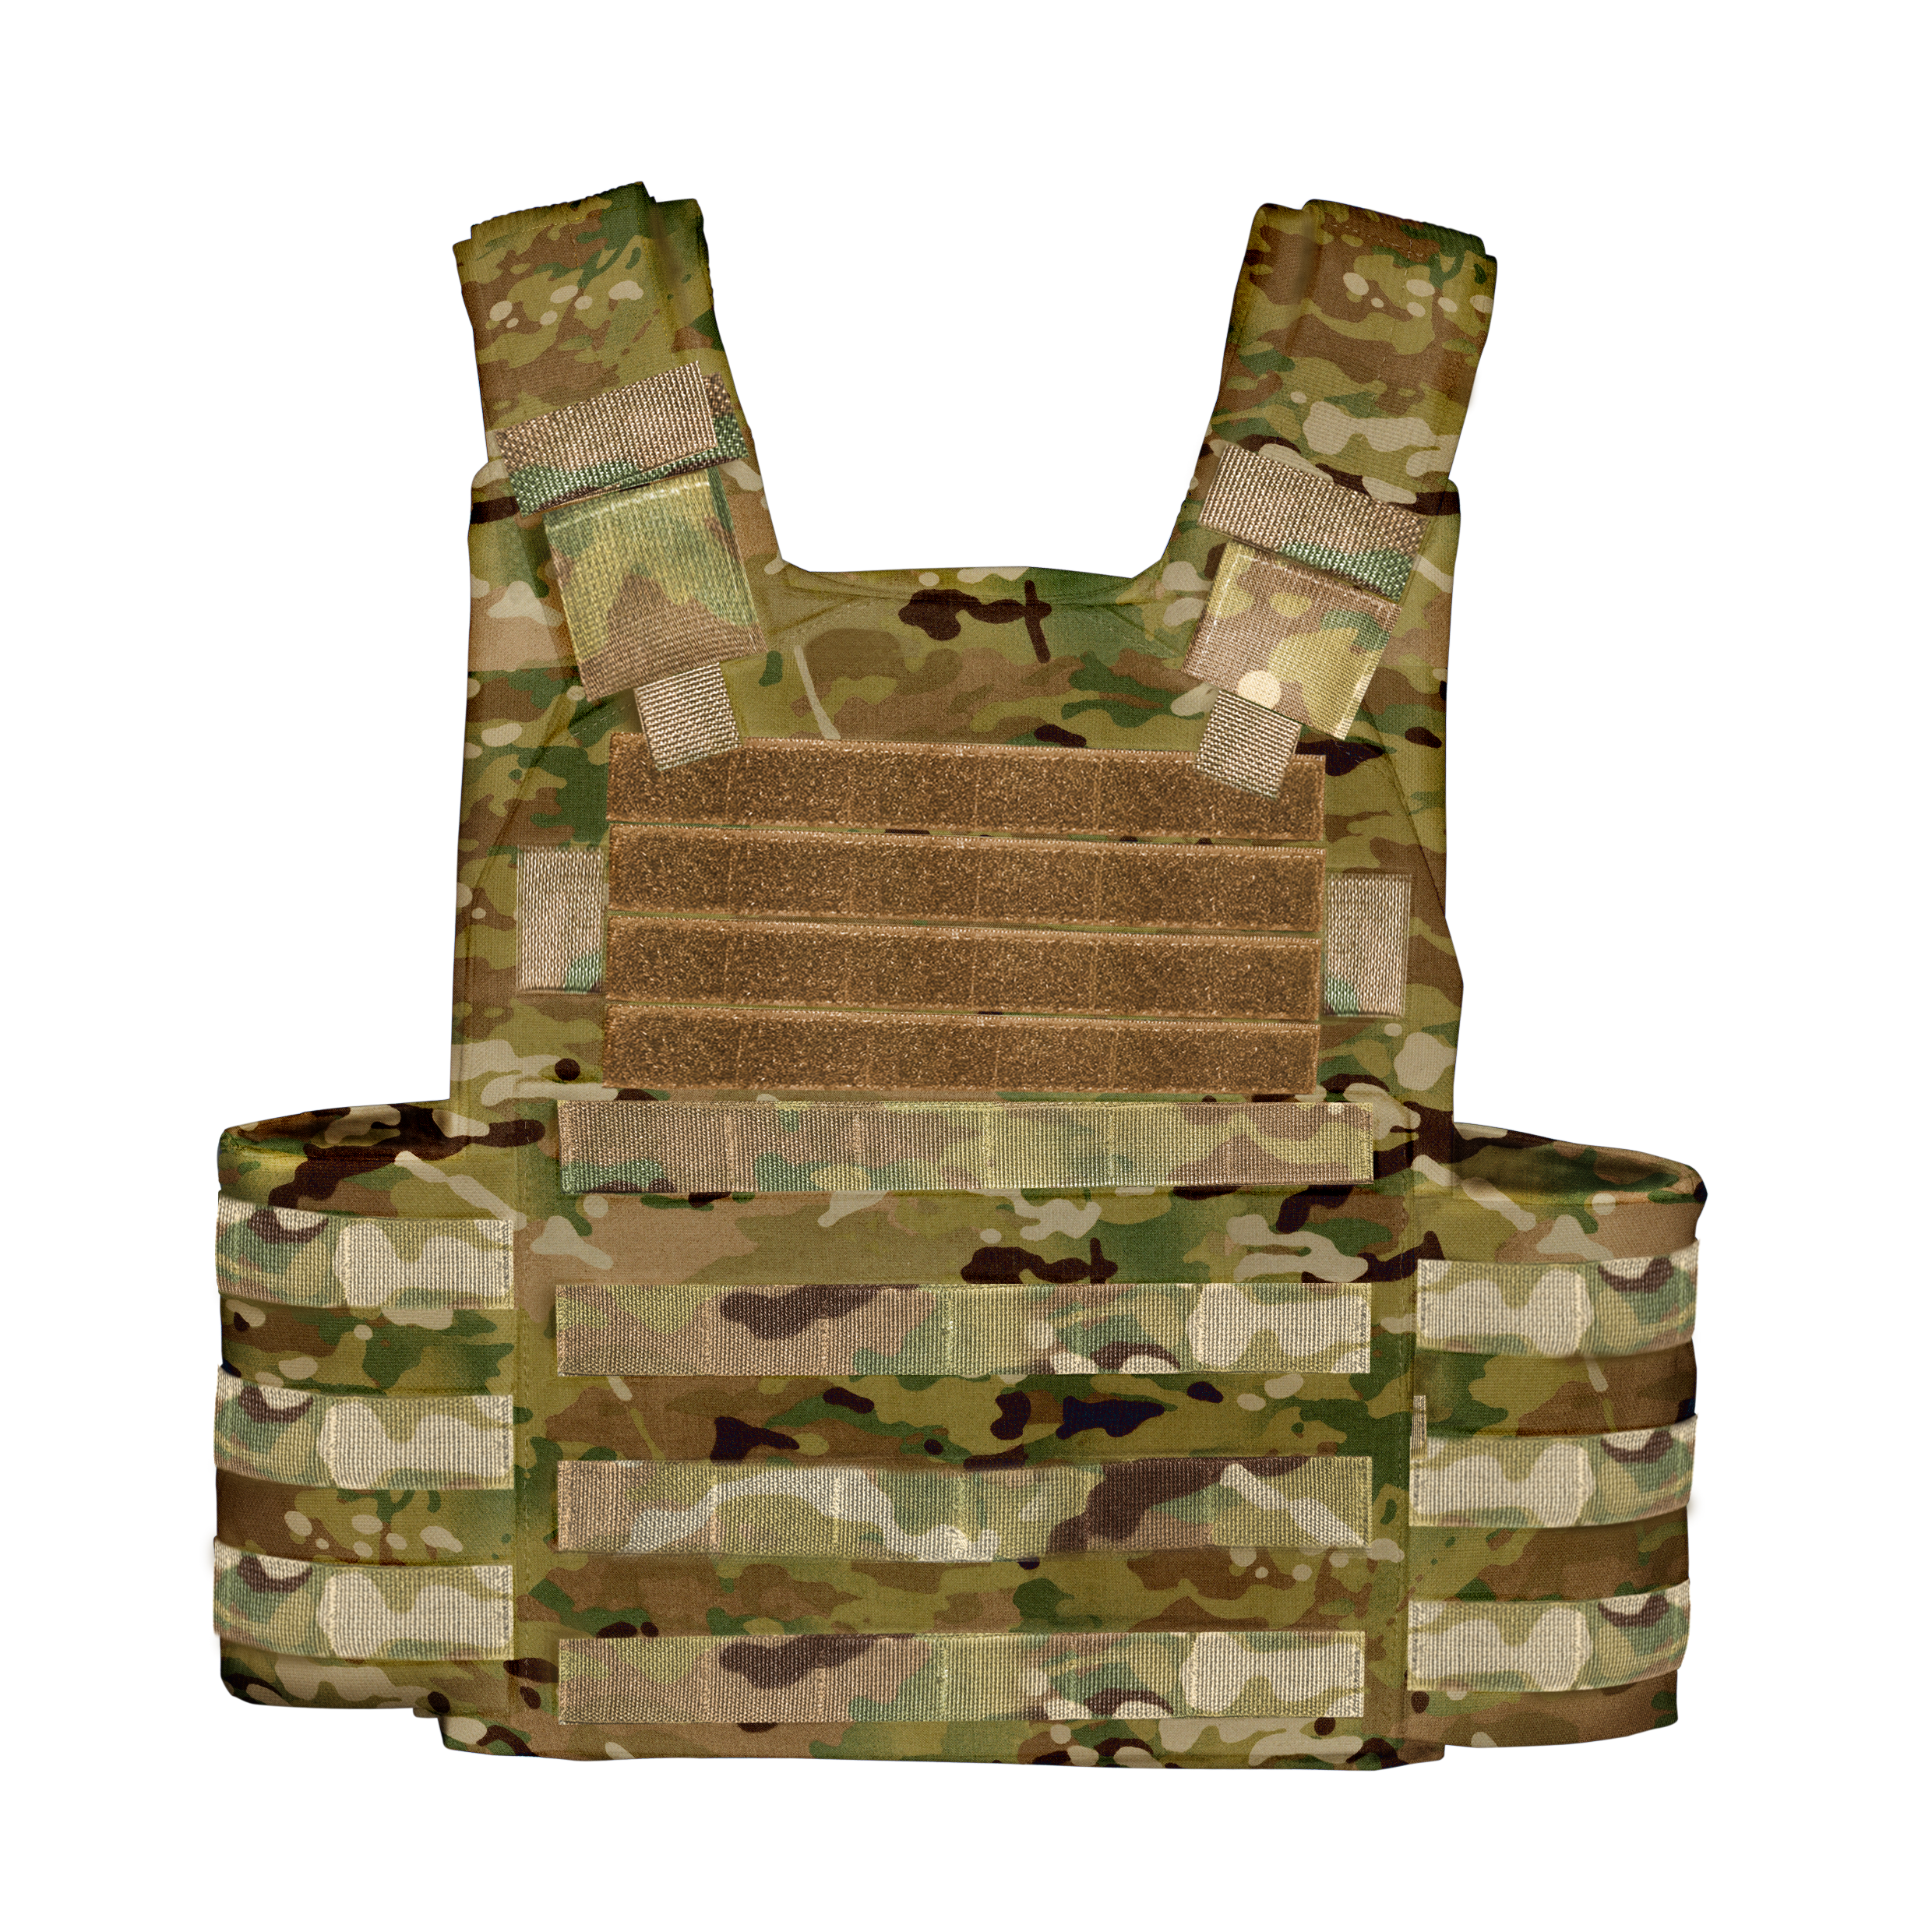 Change Product Swatch from Black to MultiCam